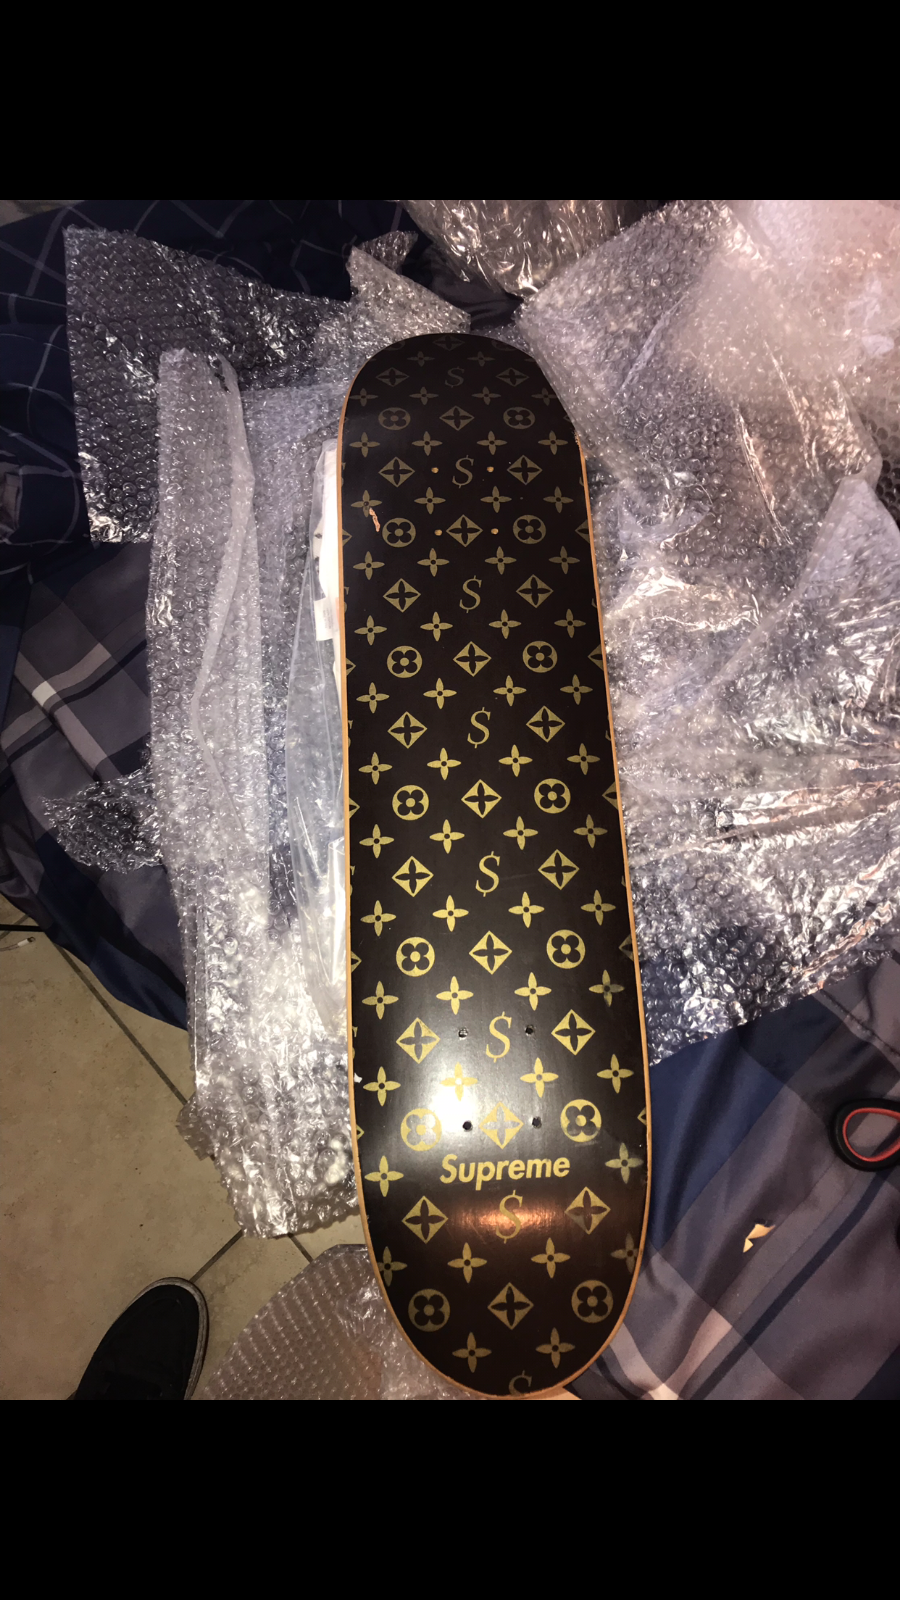 baaa6c1c7193 2000 Supreme Louis Vuitton Monogram Skateboard Deck, T-Shirt, and Beanie